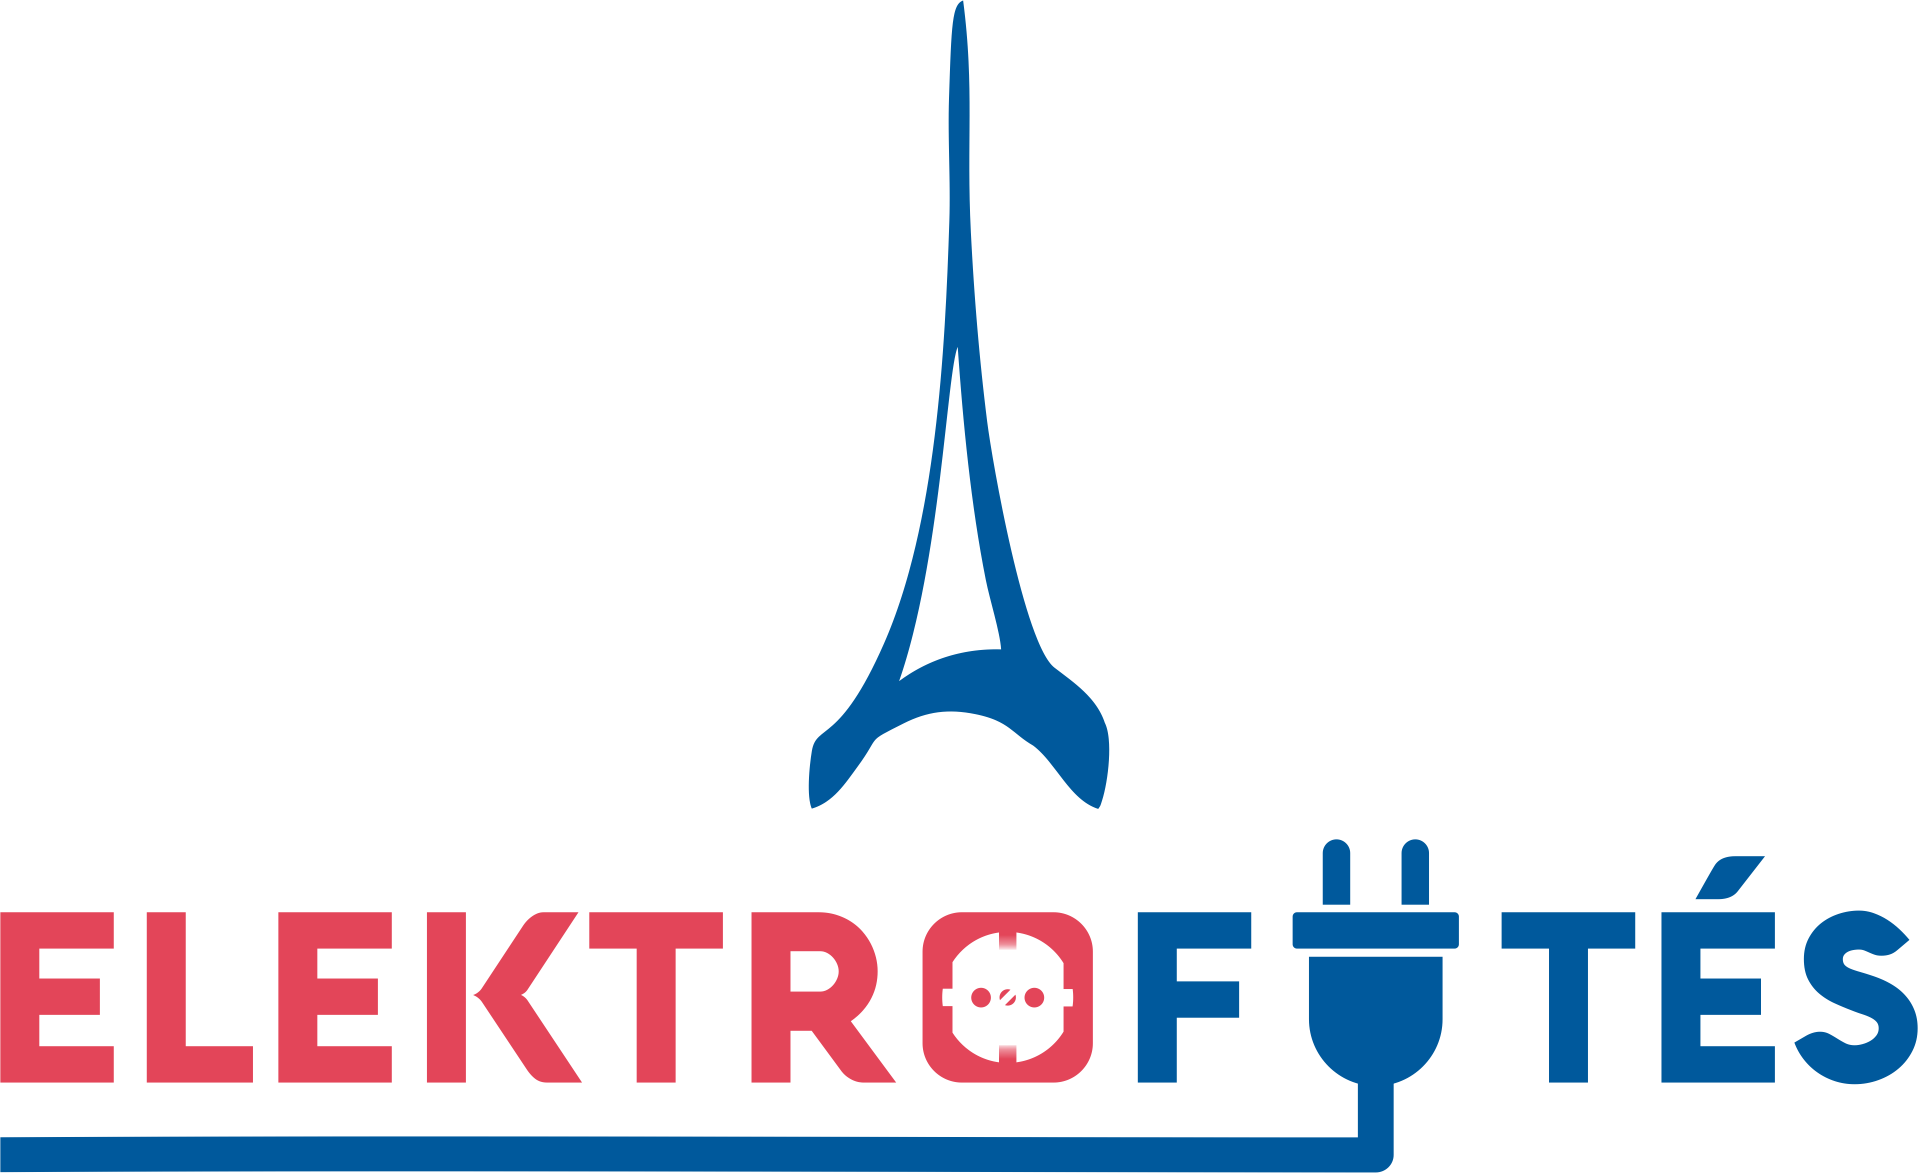 elektrofutes_logo_final_transparent_bg_light